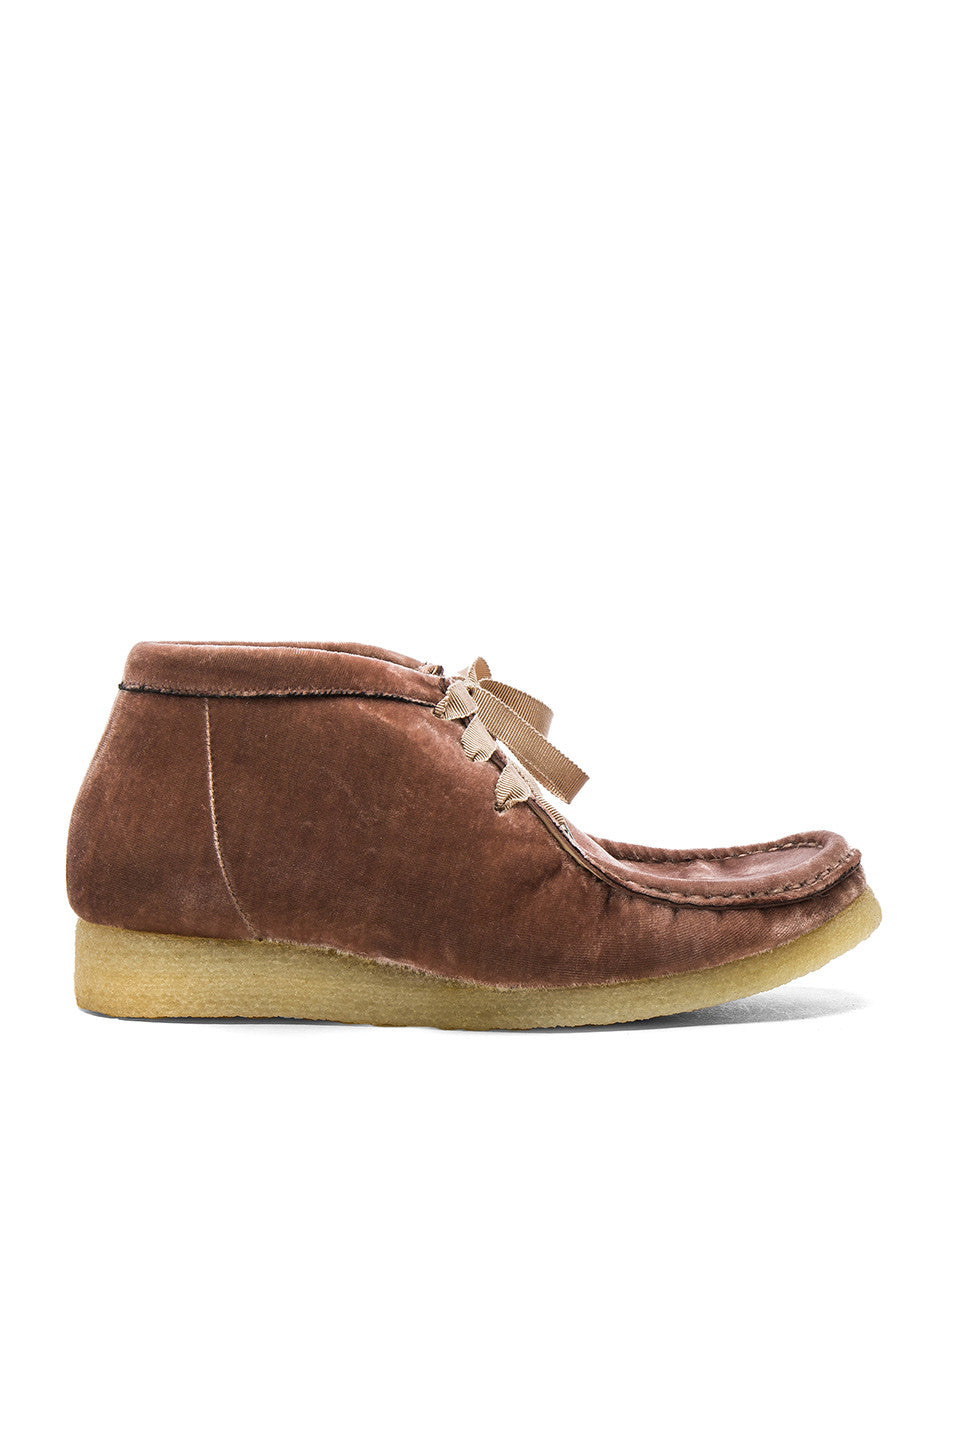 Ulla Johnson Velvet Demetra High Wallabee